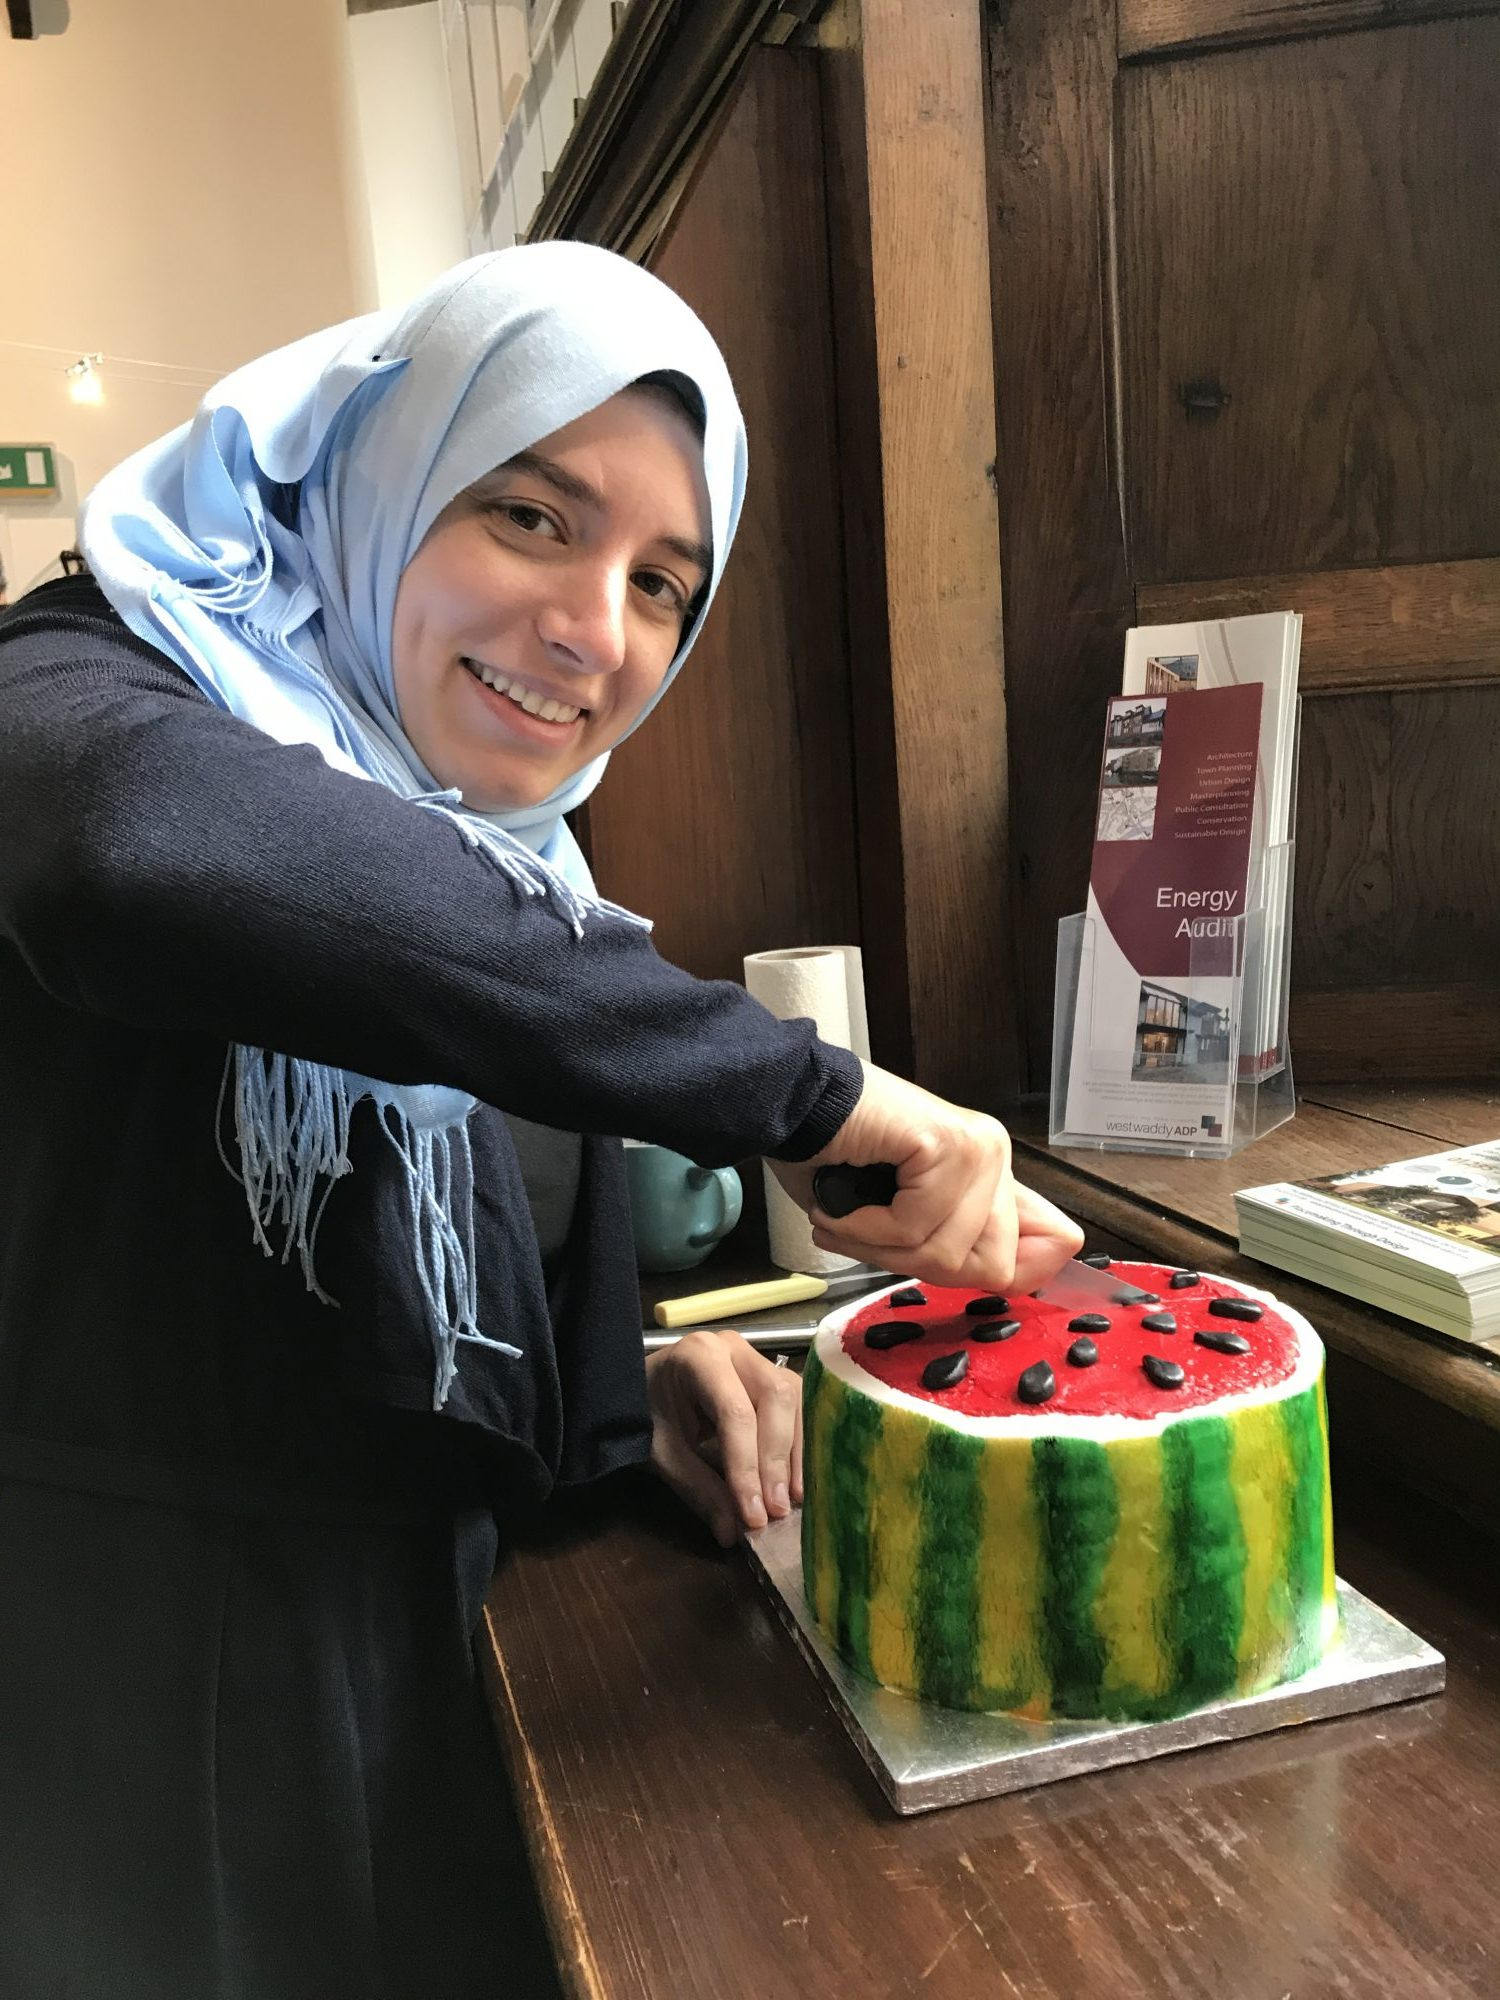 Happy Birthday, Bakeoff, bake, bake-off, cake, West Waddy, West Waddy ADP, Rashed Mustafa, Julie Mann, Architects, Town Planners, Urban Designers, Abingdon, Oxford, Oxfordshire